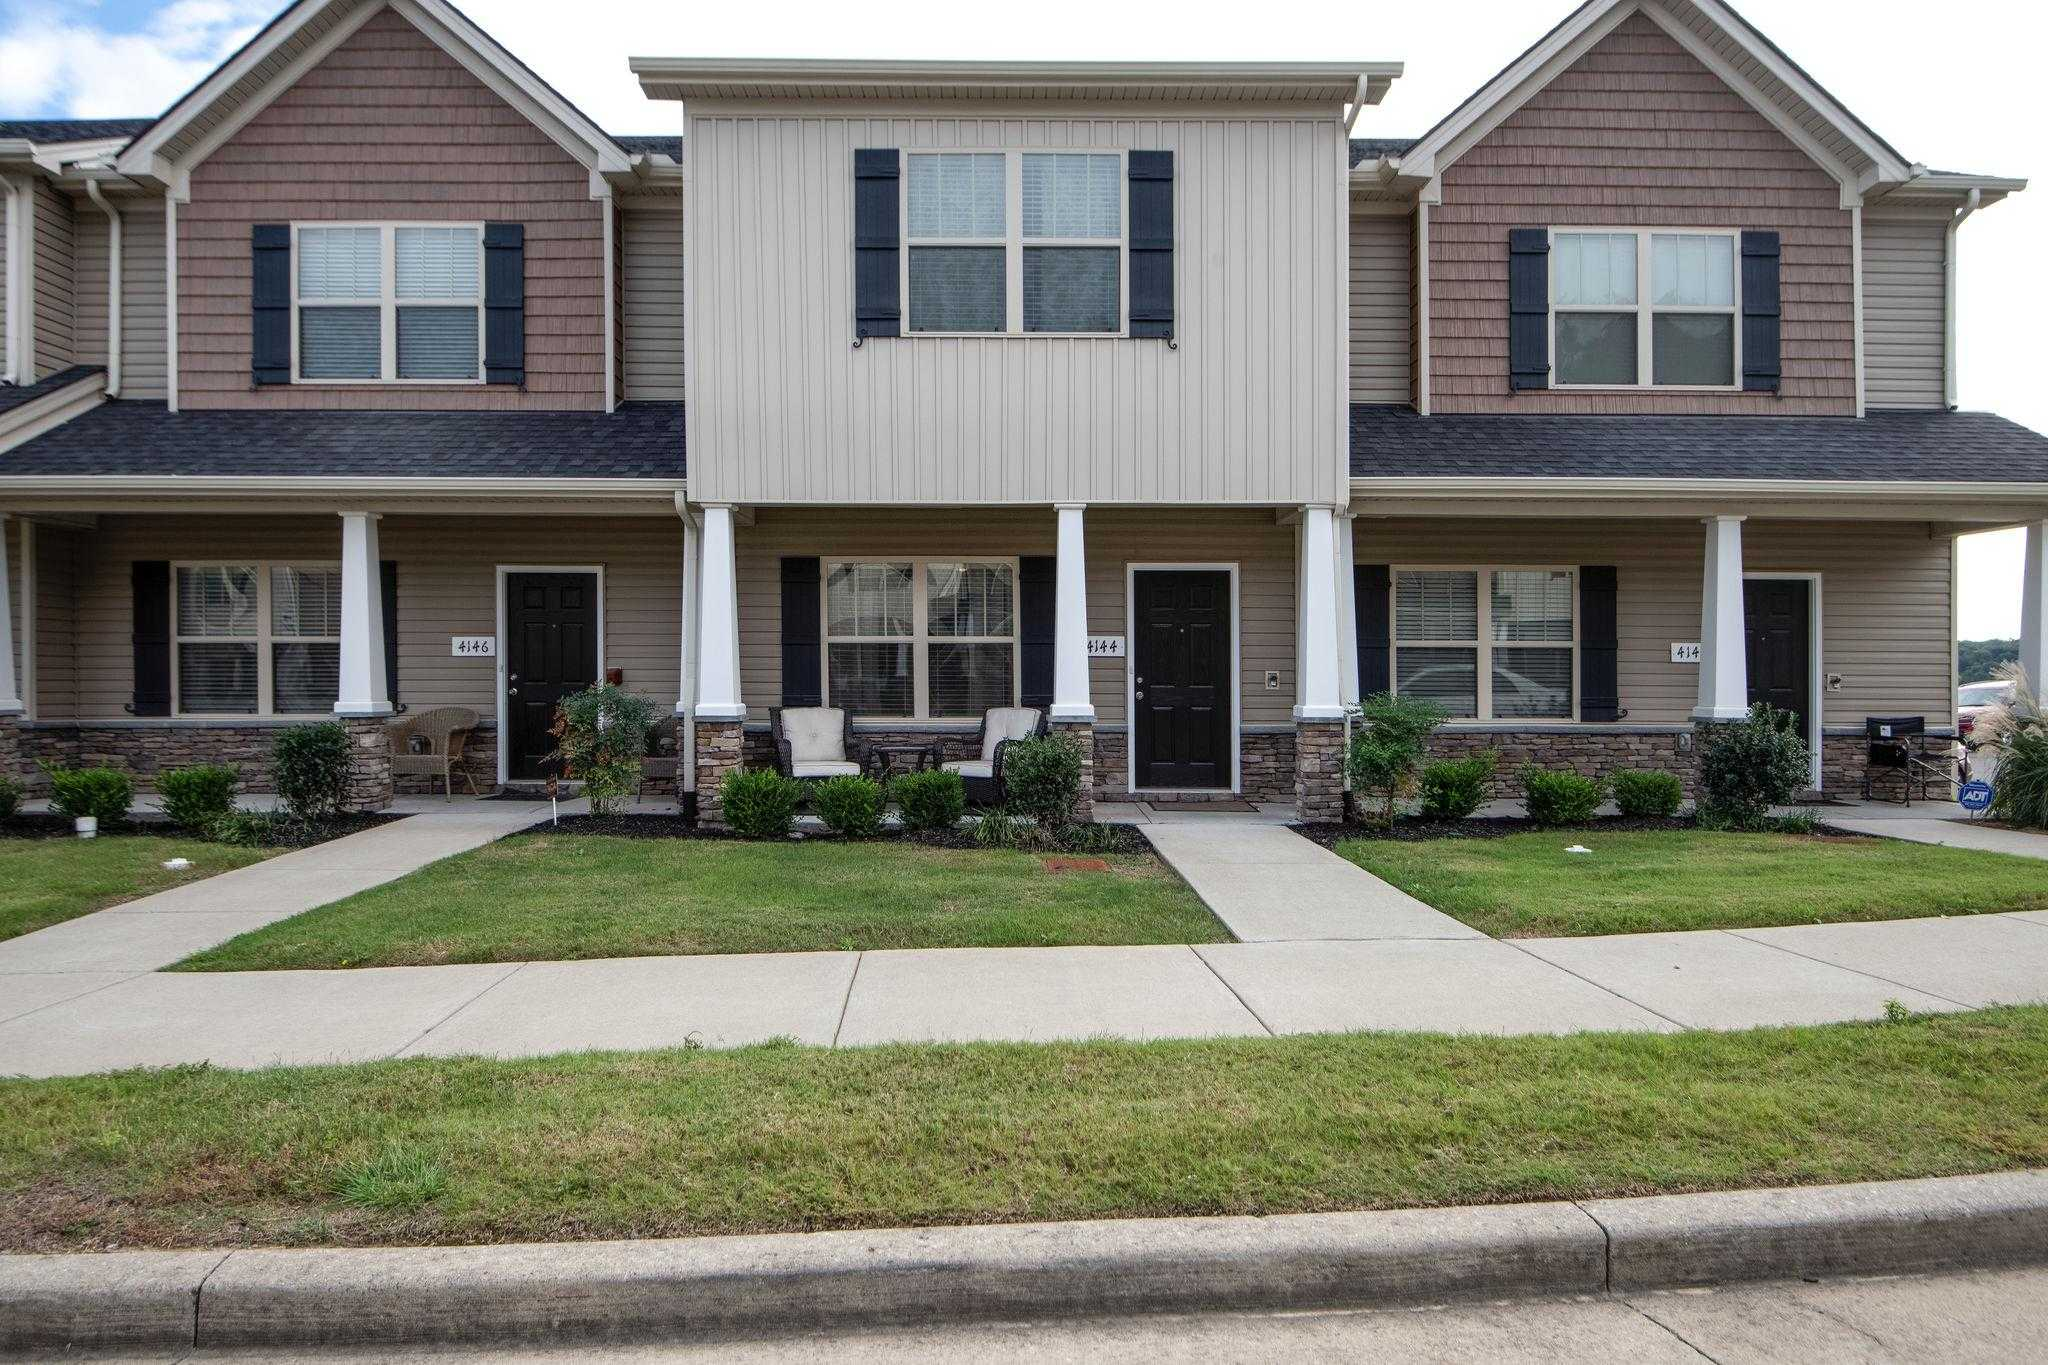 $168,500 - 2Br/3Ba -  for Sale in Old Hickory Commons, Antioch